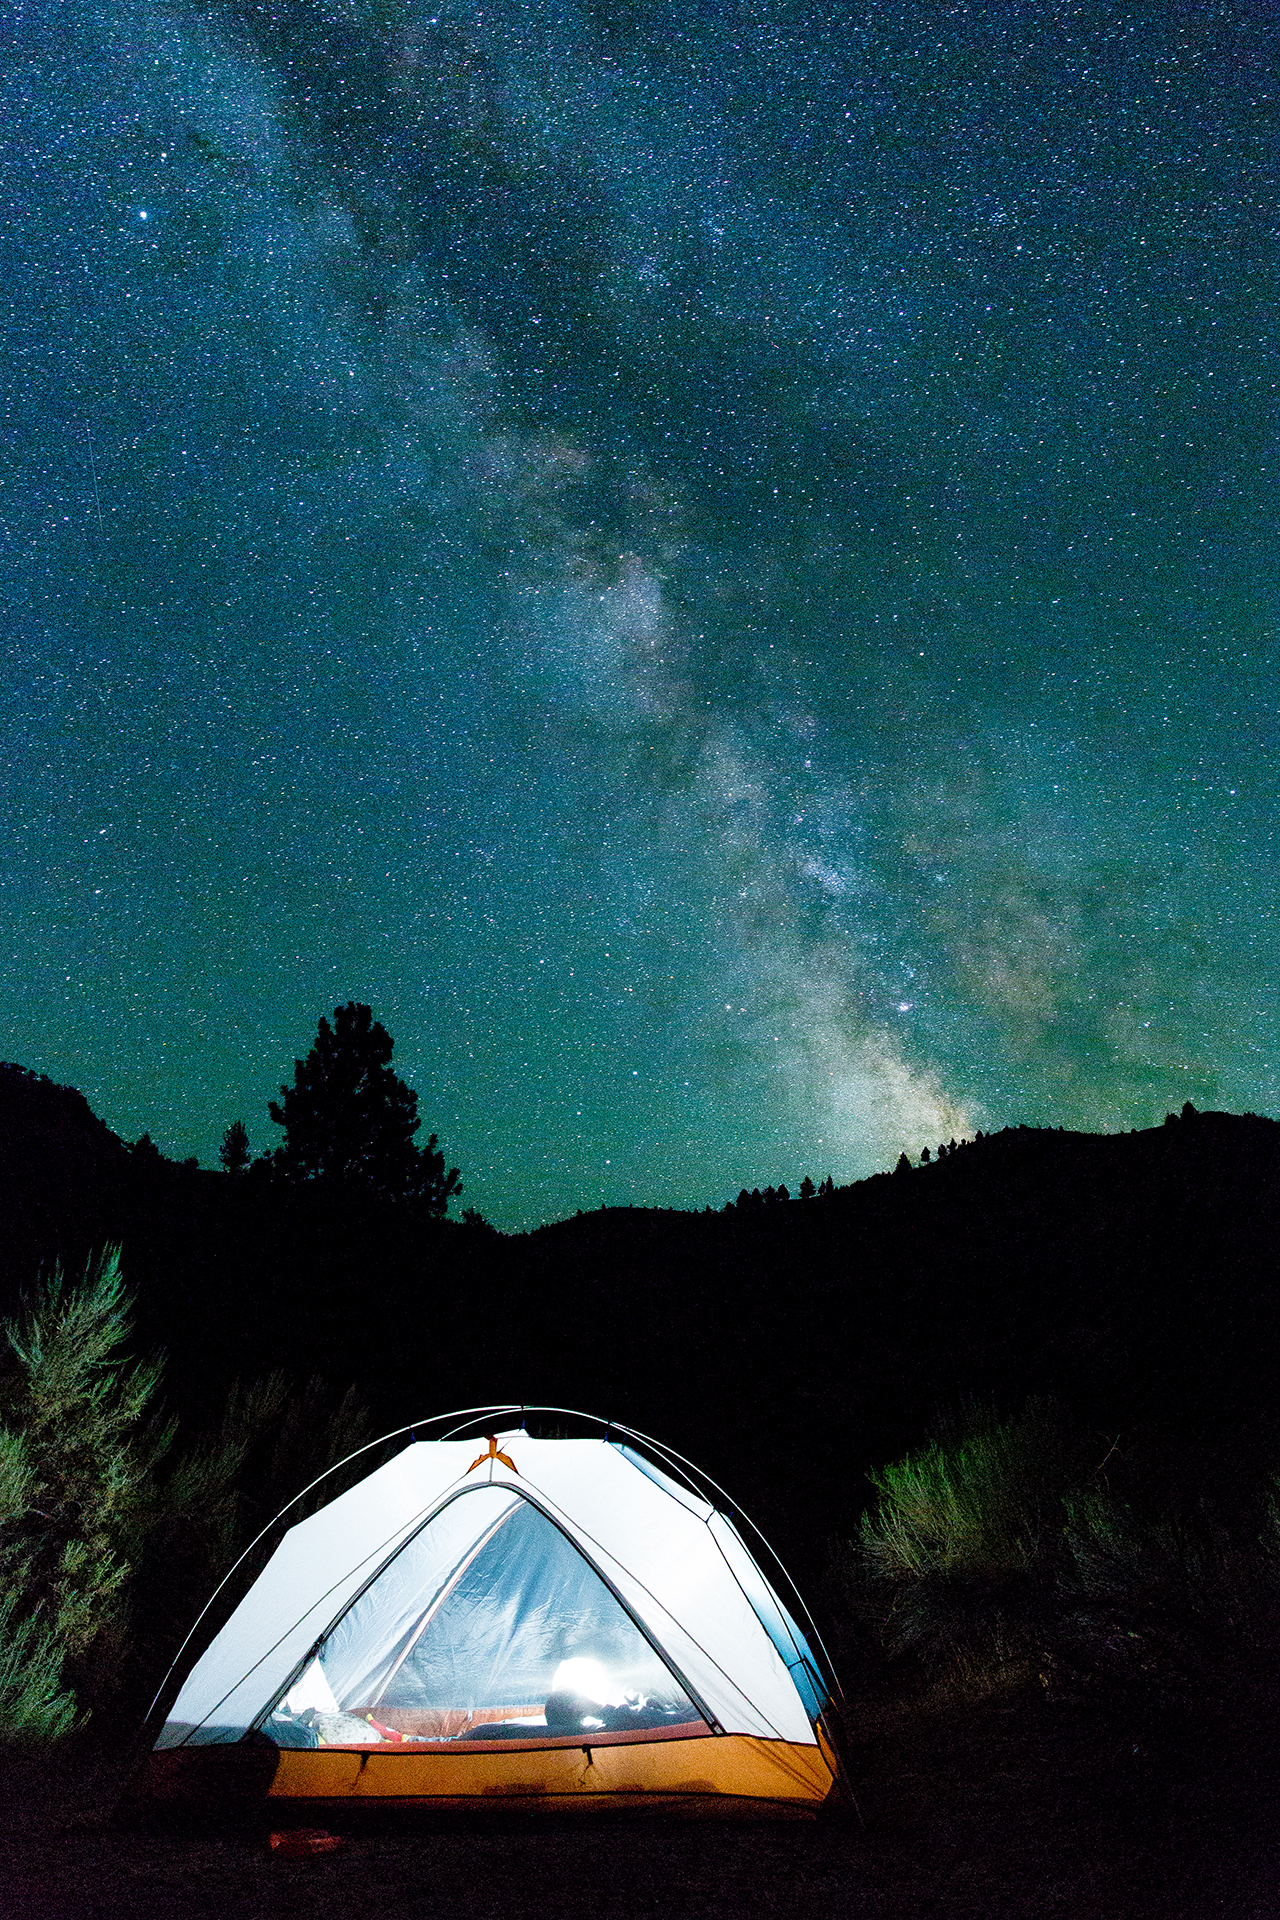 The Milky Way Campsite